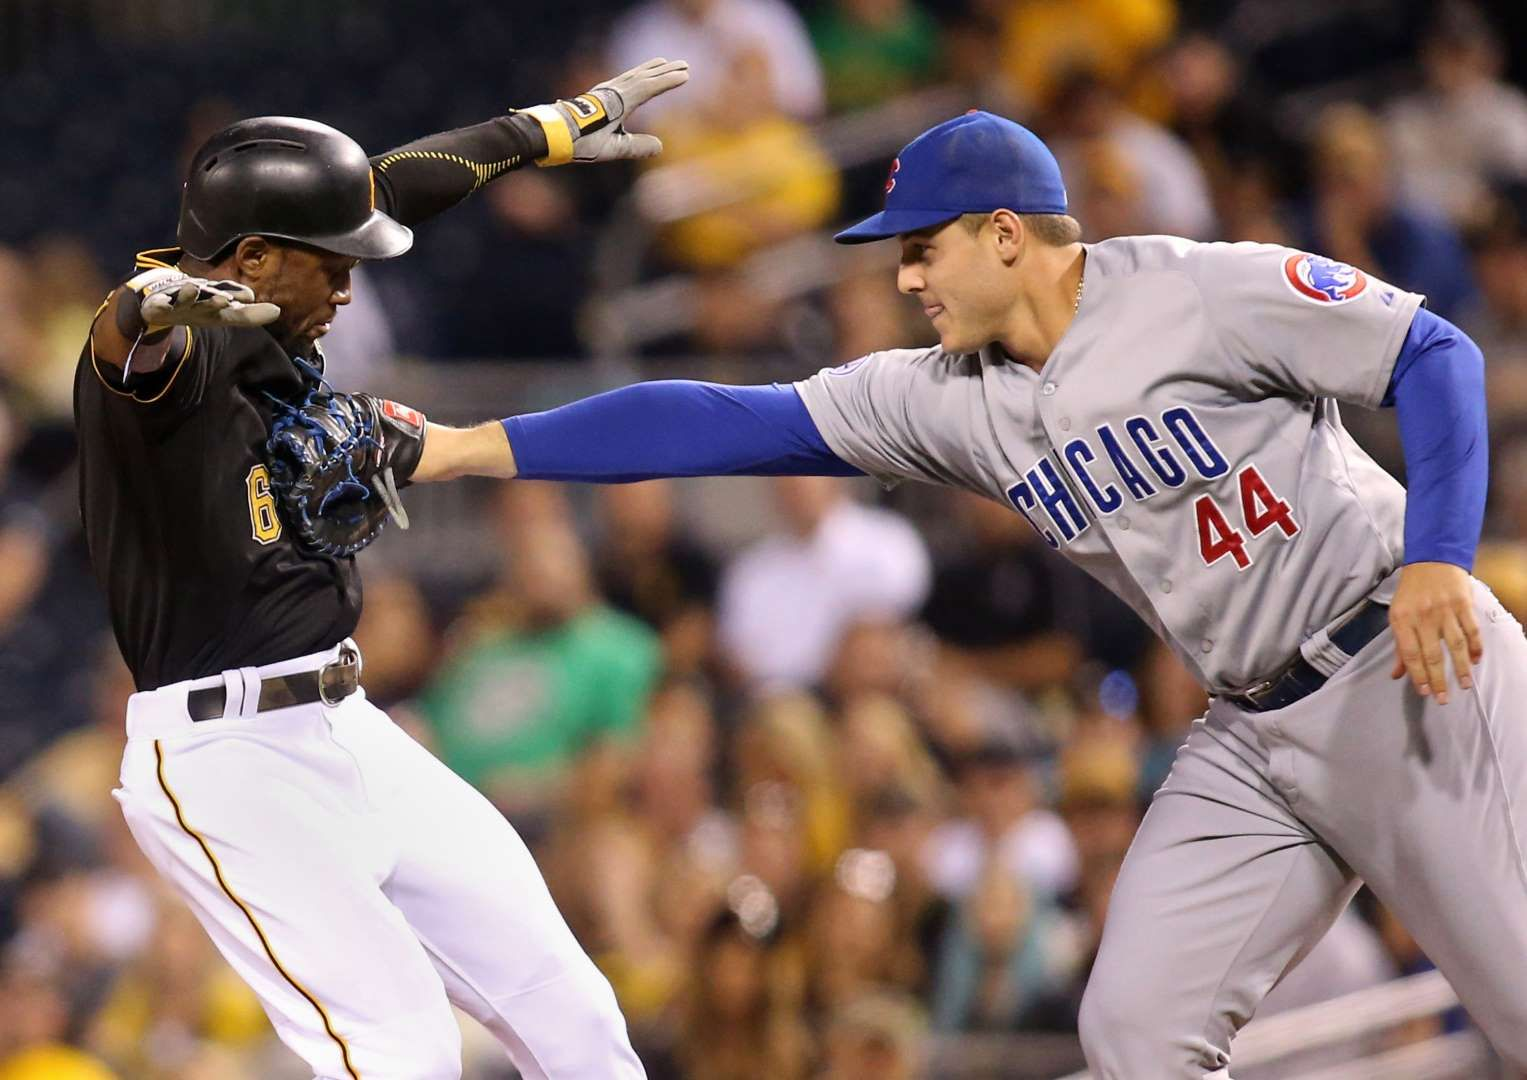 Pin on Anthony Rizzo